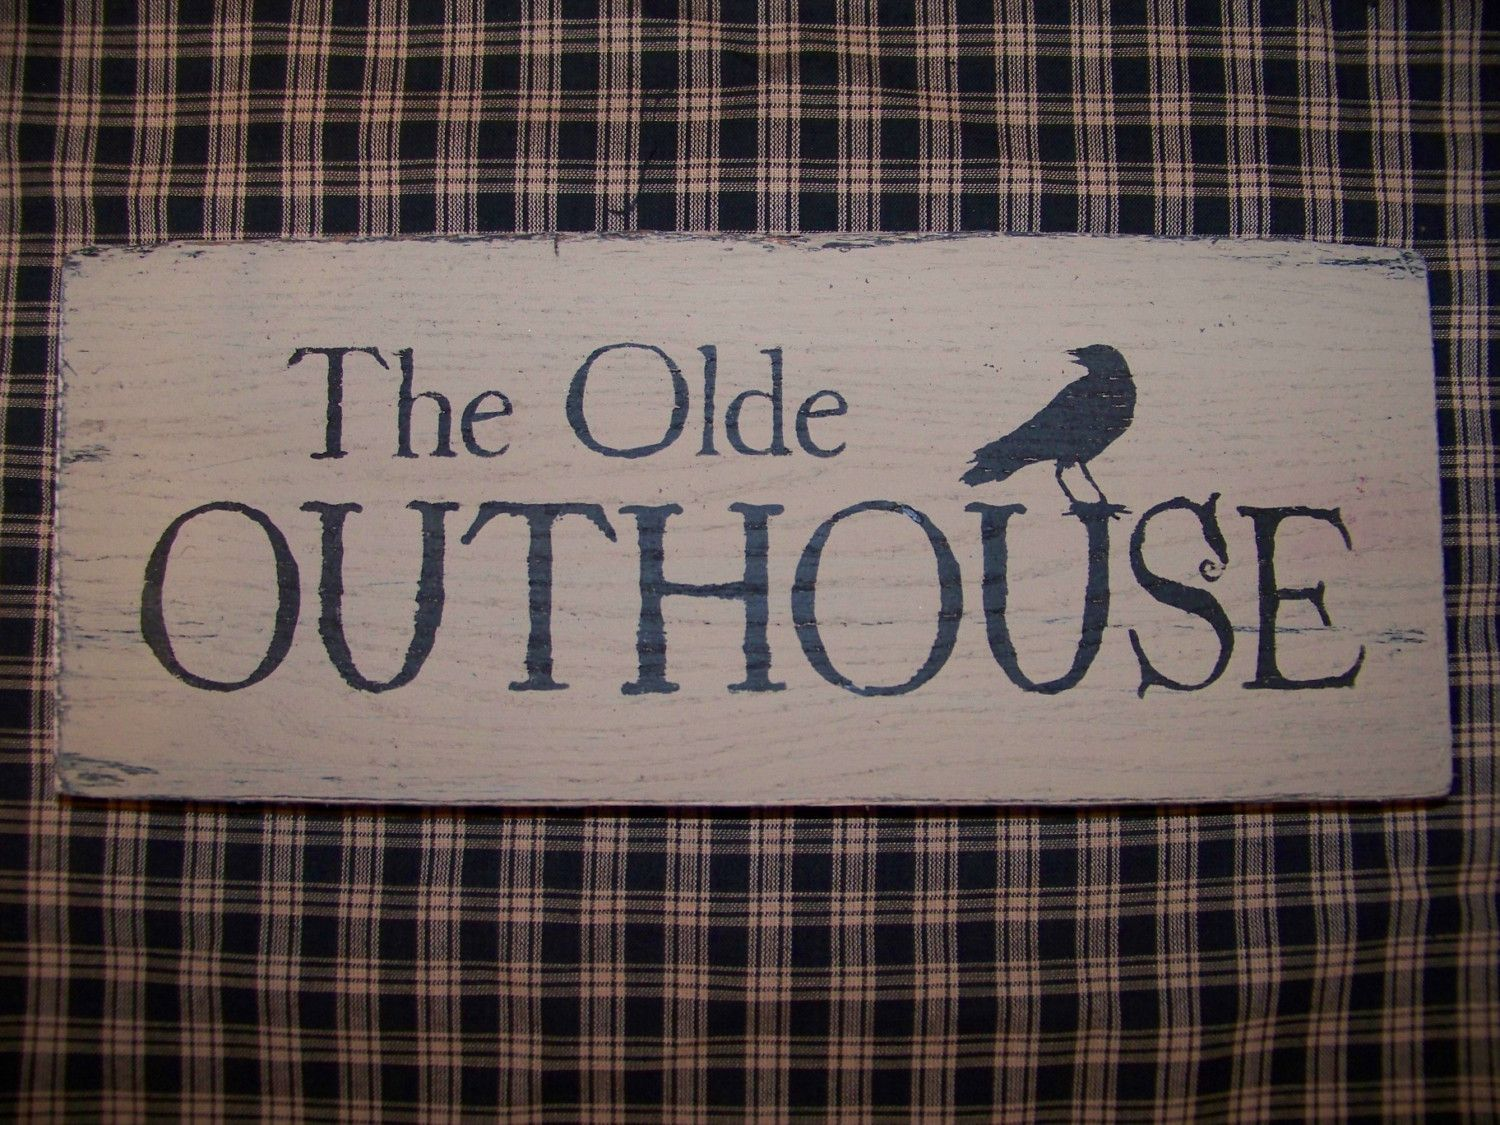 Primitive bathroom decorating ideas - Primitive The Olde Outhouse Wood Sign Crow Bathroom Decor Country Bath Accent Rustic Charm Black And Tan Grungy Folk Art Prim Make Do Cabin Look Rough Edges